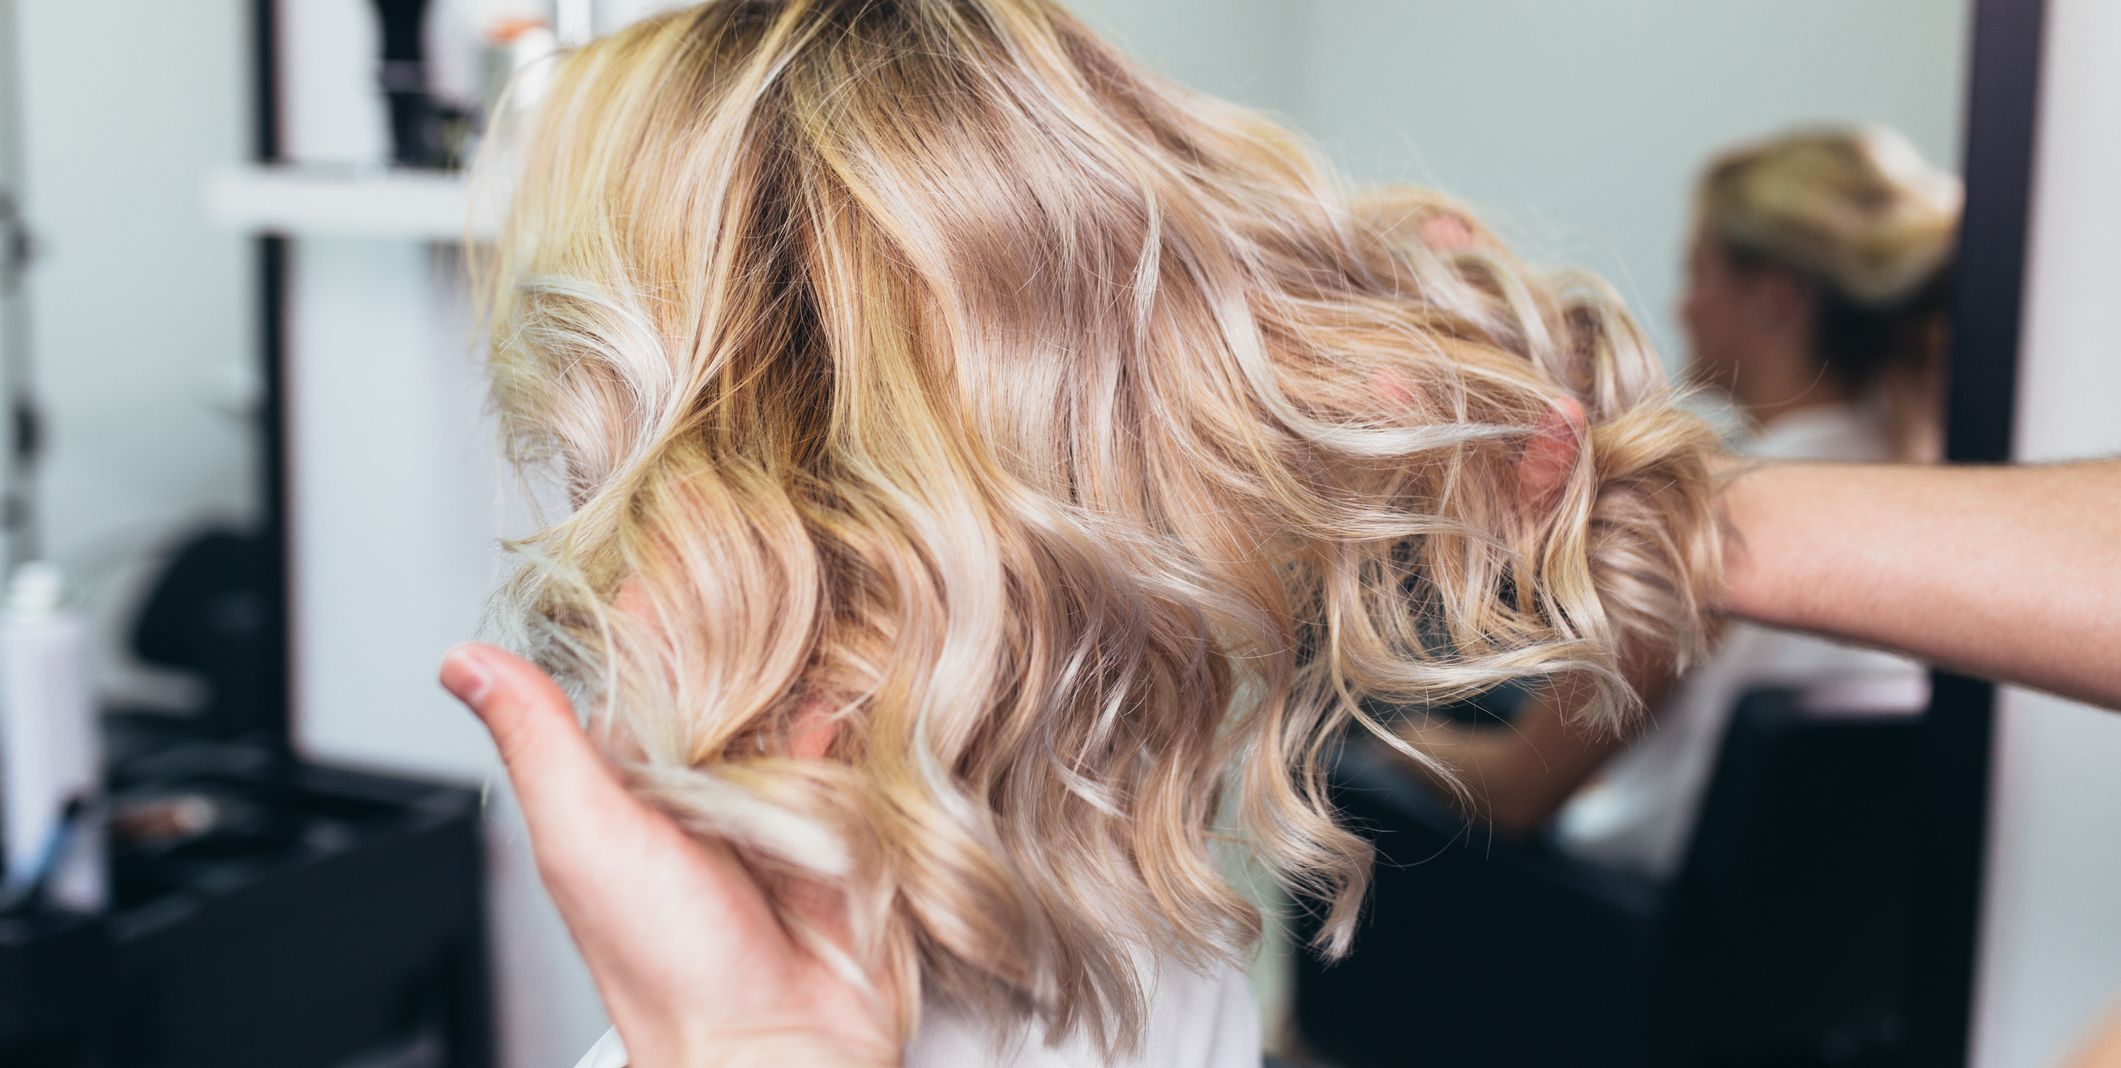 We've finally figured out why our blonde hair keeps going brassy